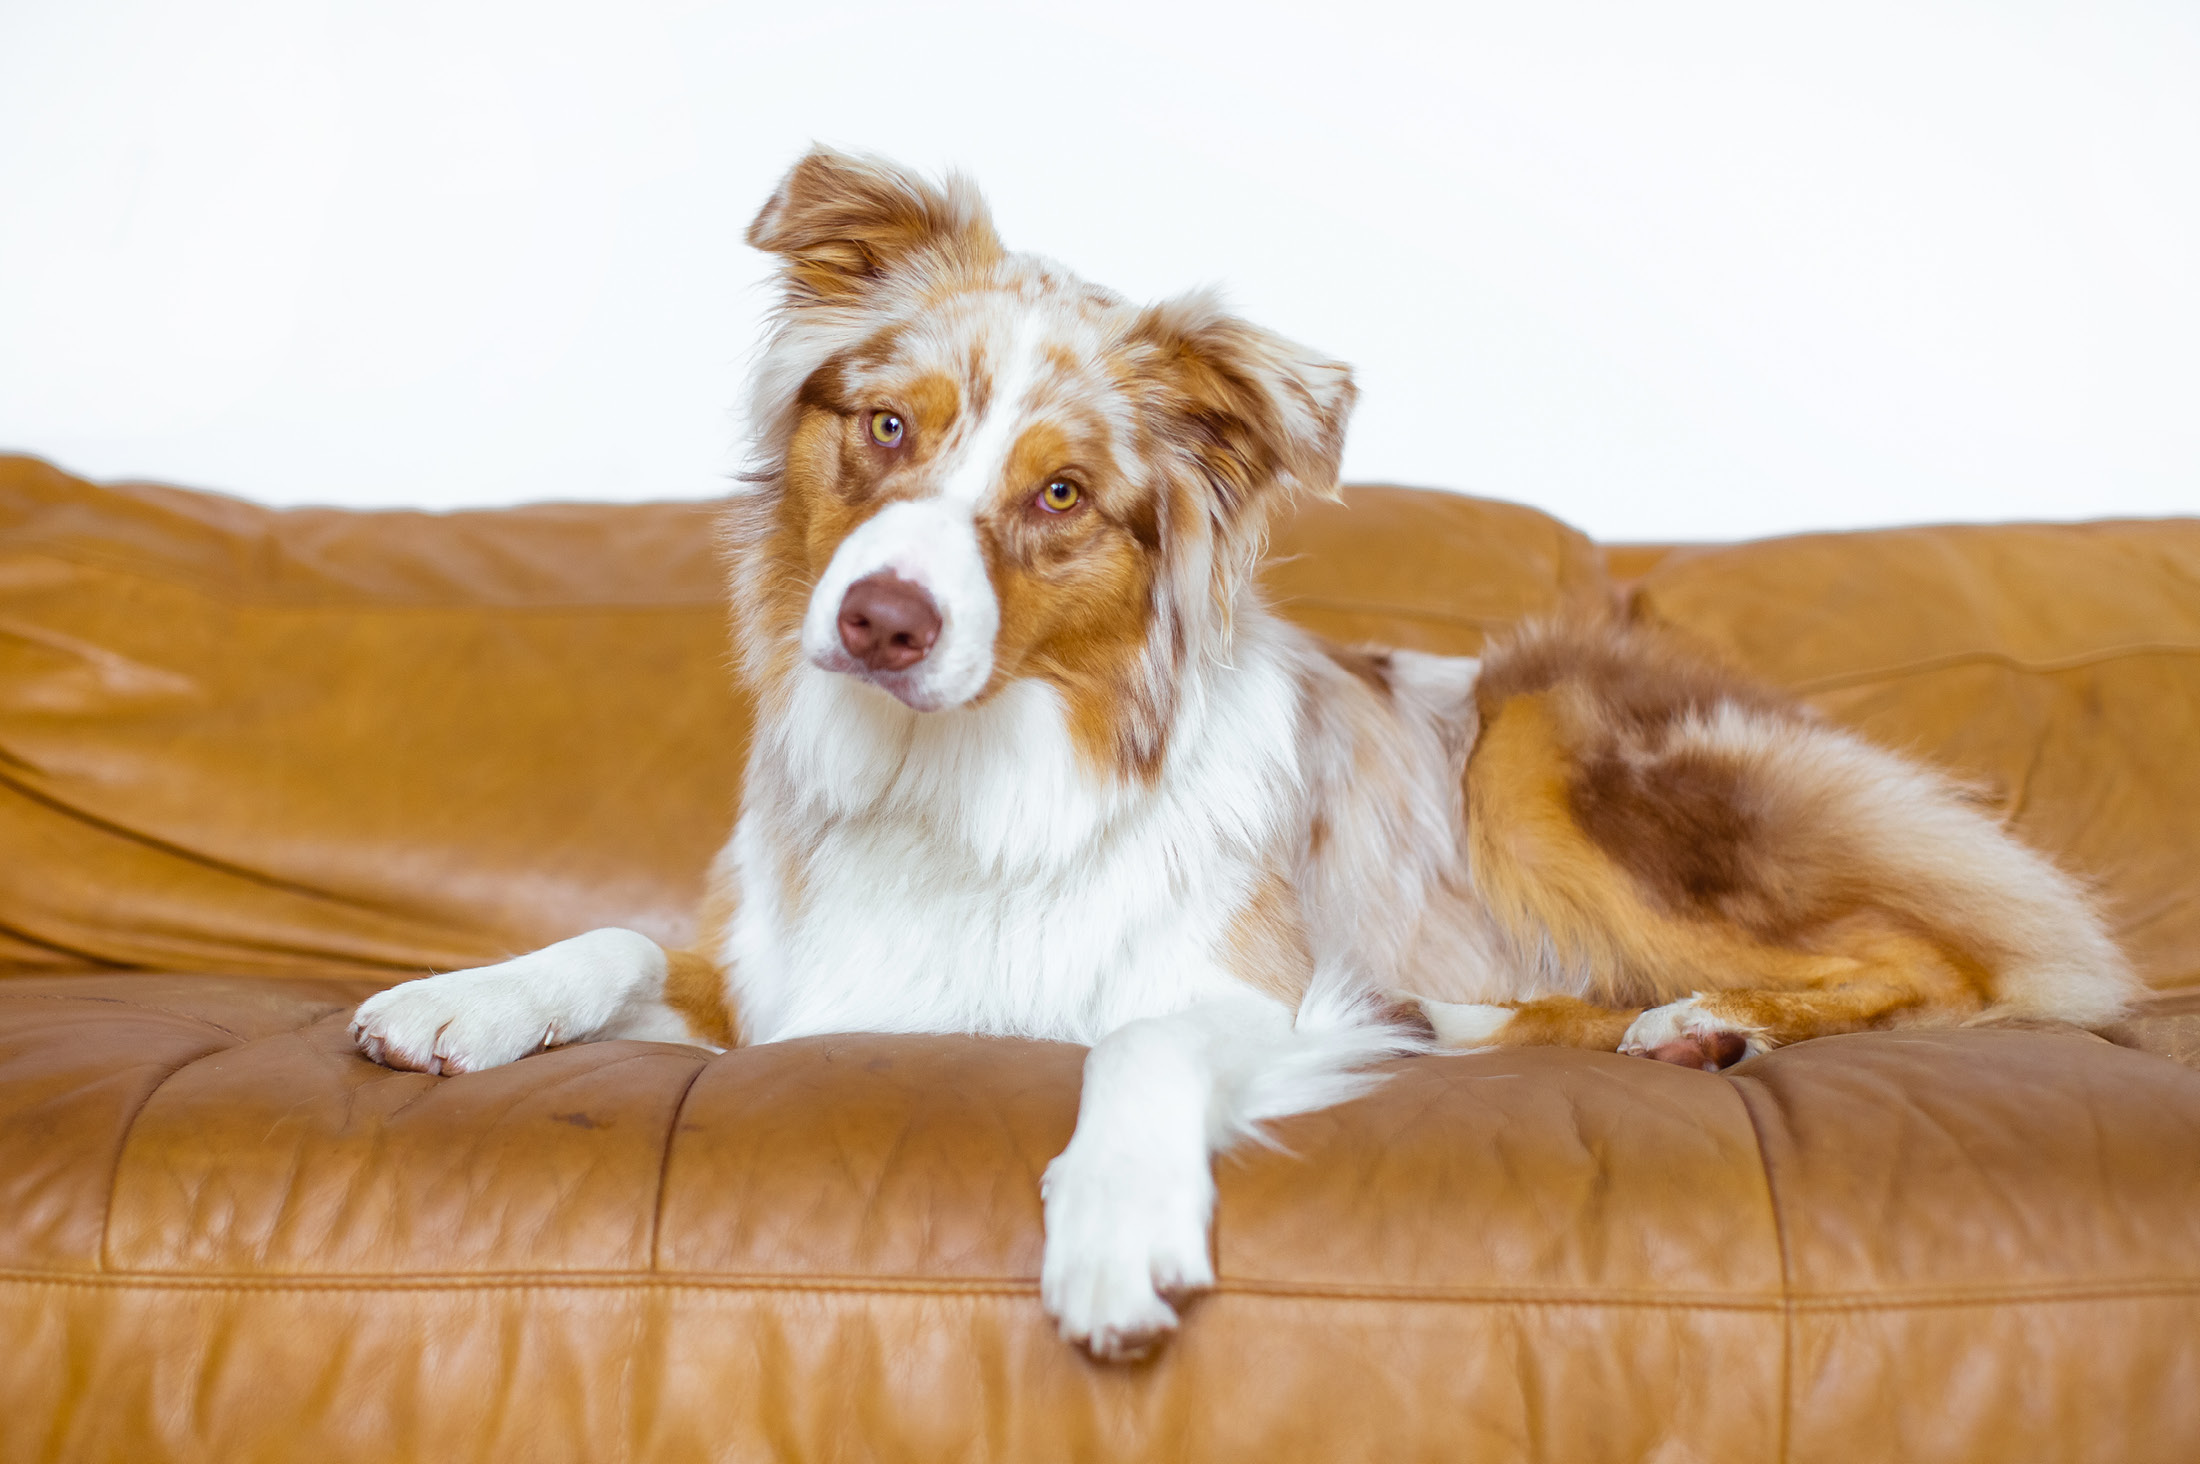 Aussie shepherd on tan leather couch - 6 Simple pet photography tips